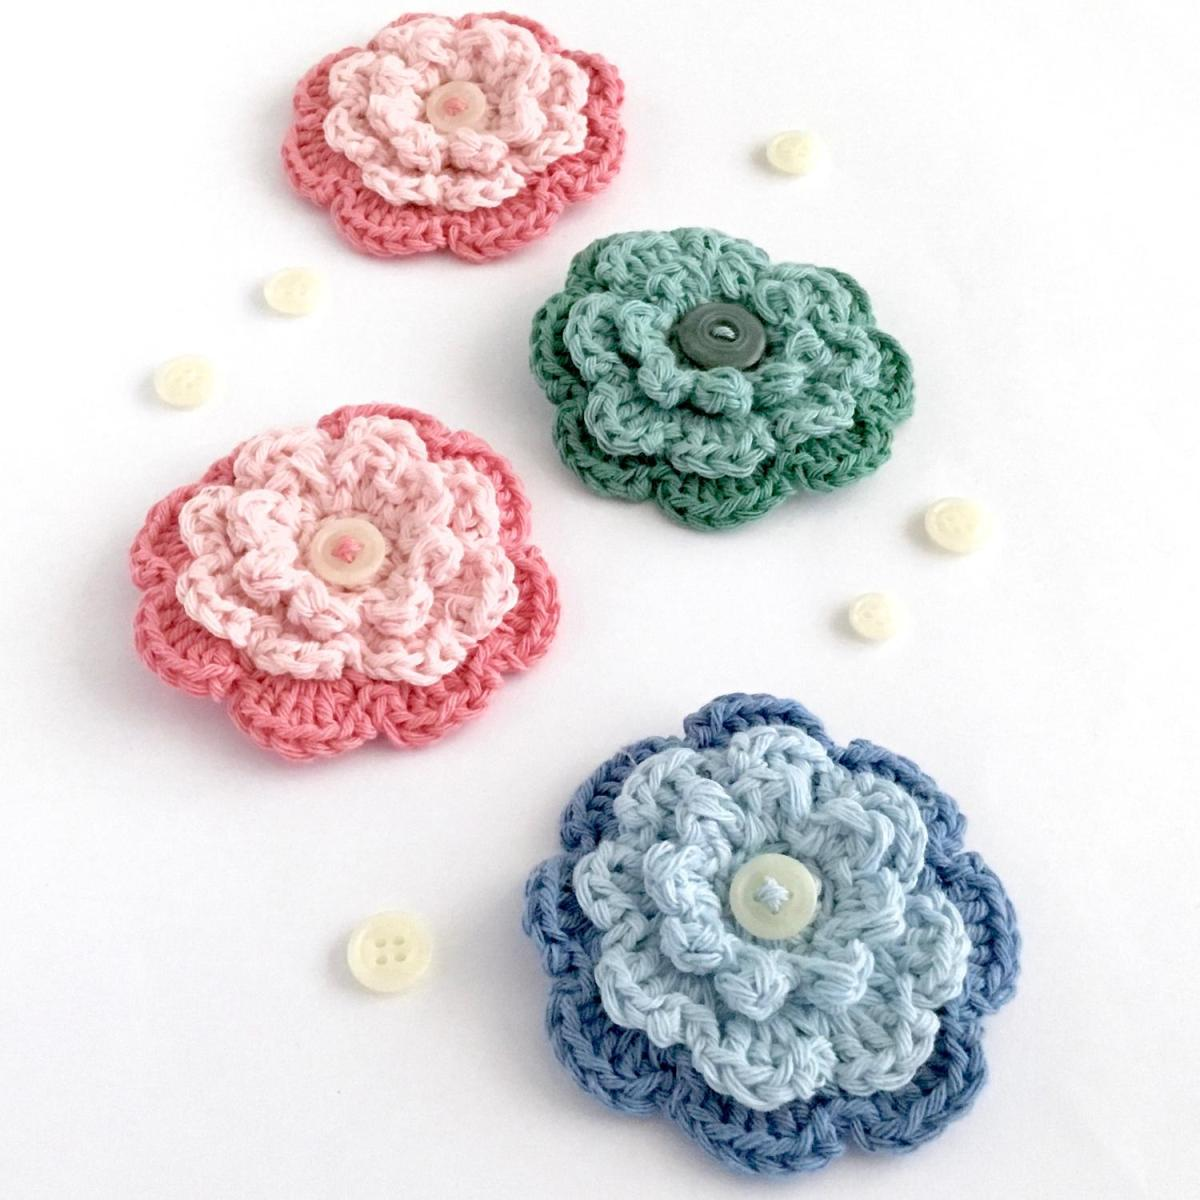 Crocheted Brooches Crochet Button Flower Brooches